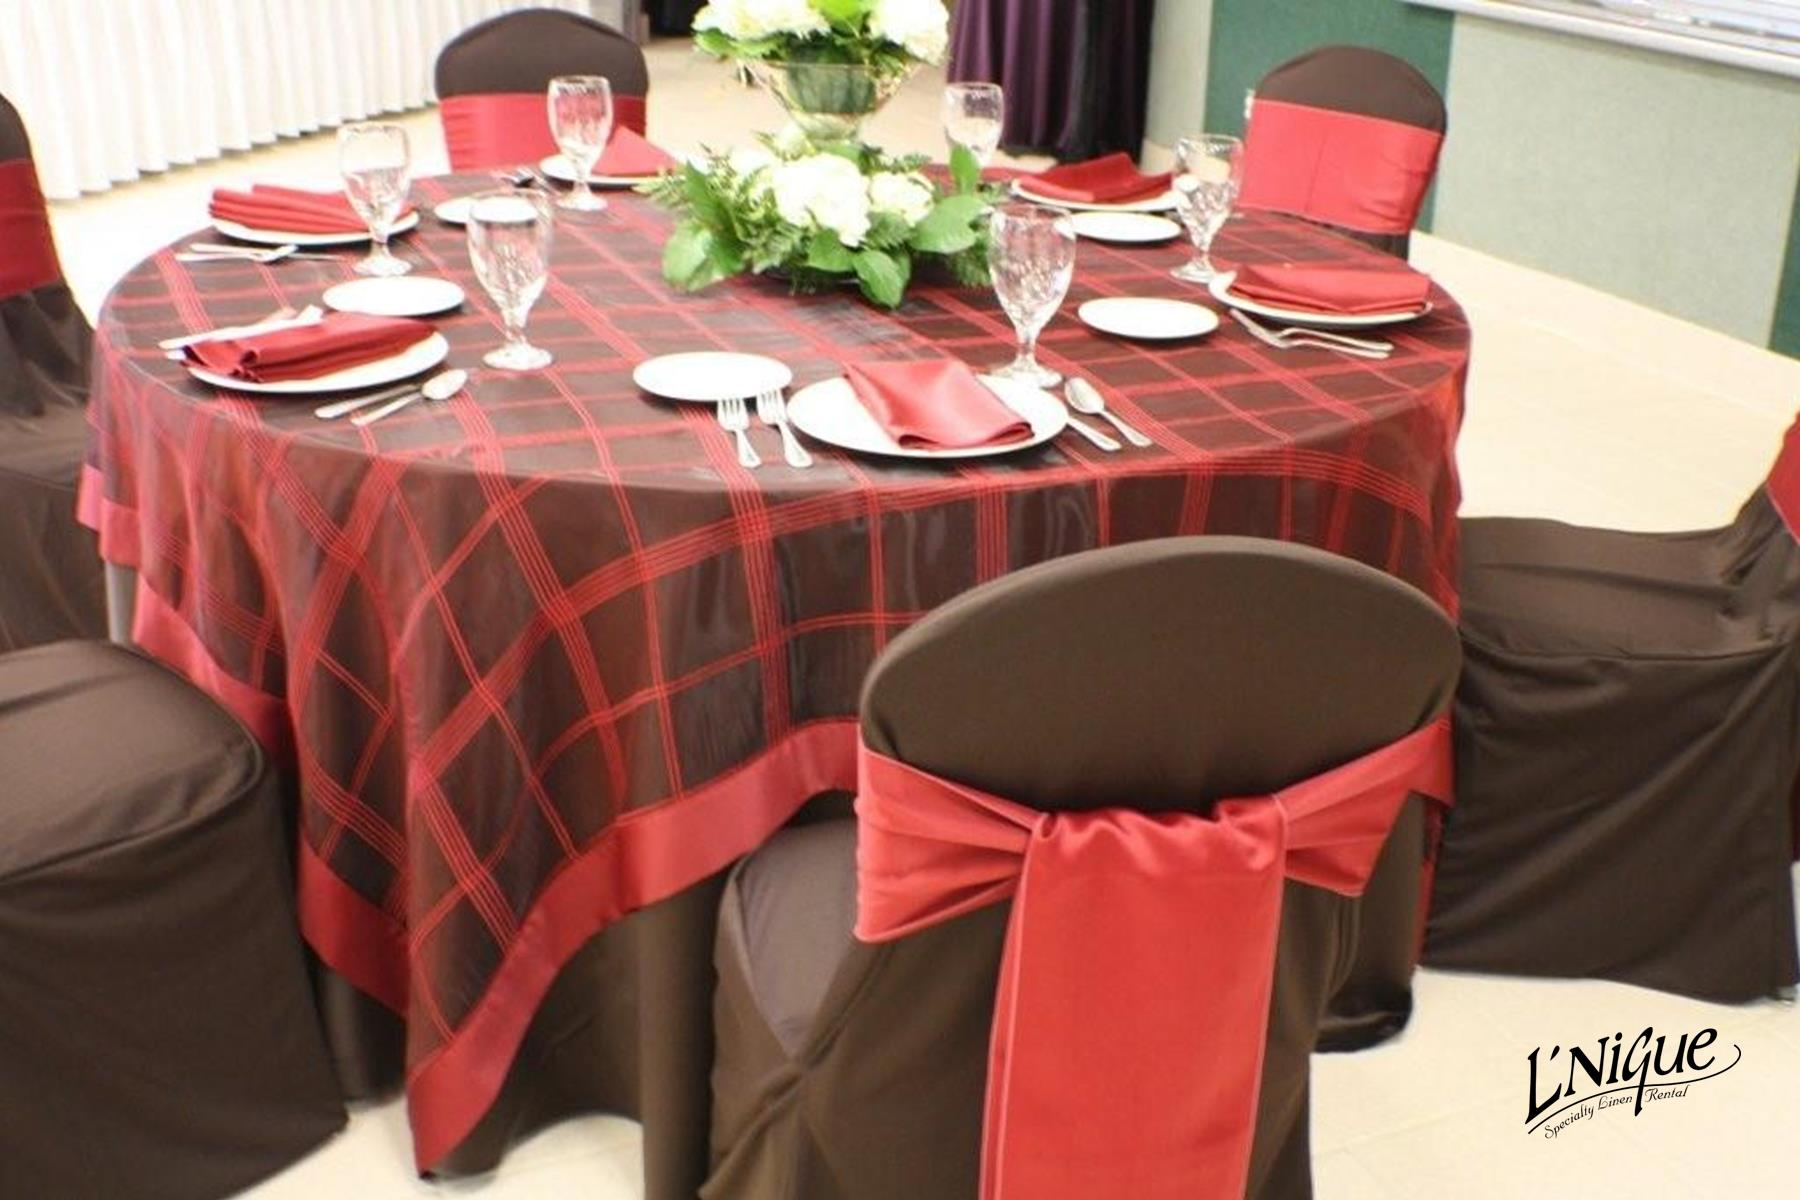 chair covers rental cleveland ohio invisible prank prop brown budget poly tablecloth specialty linen